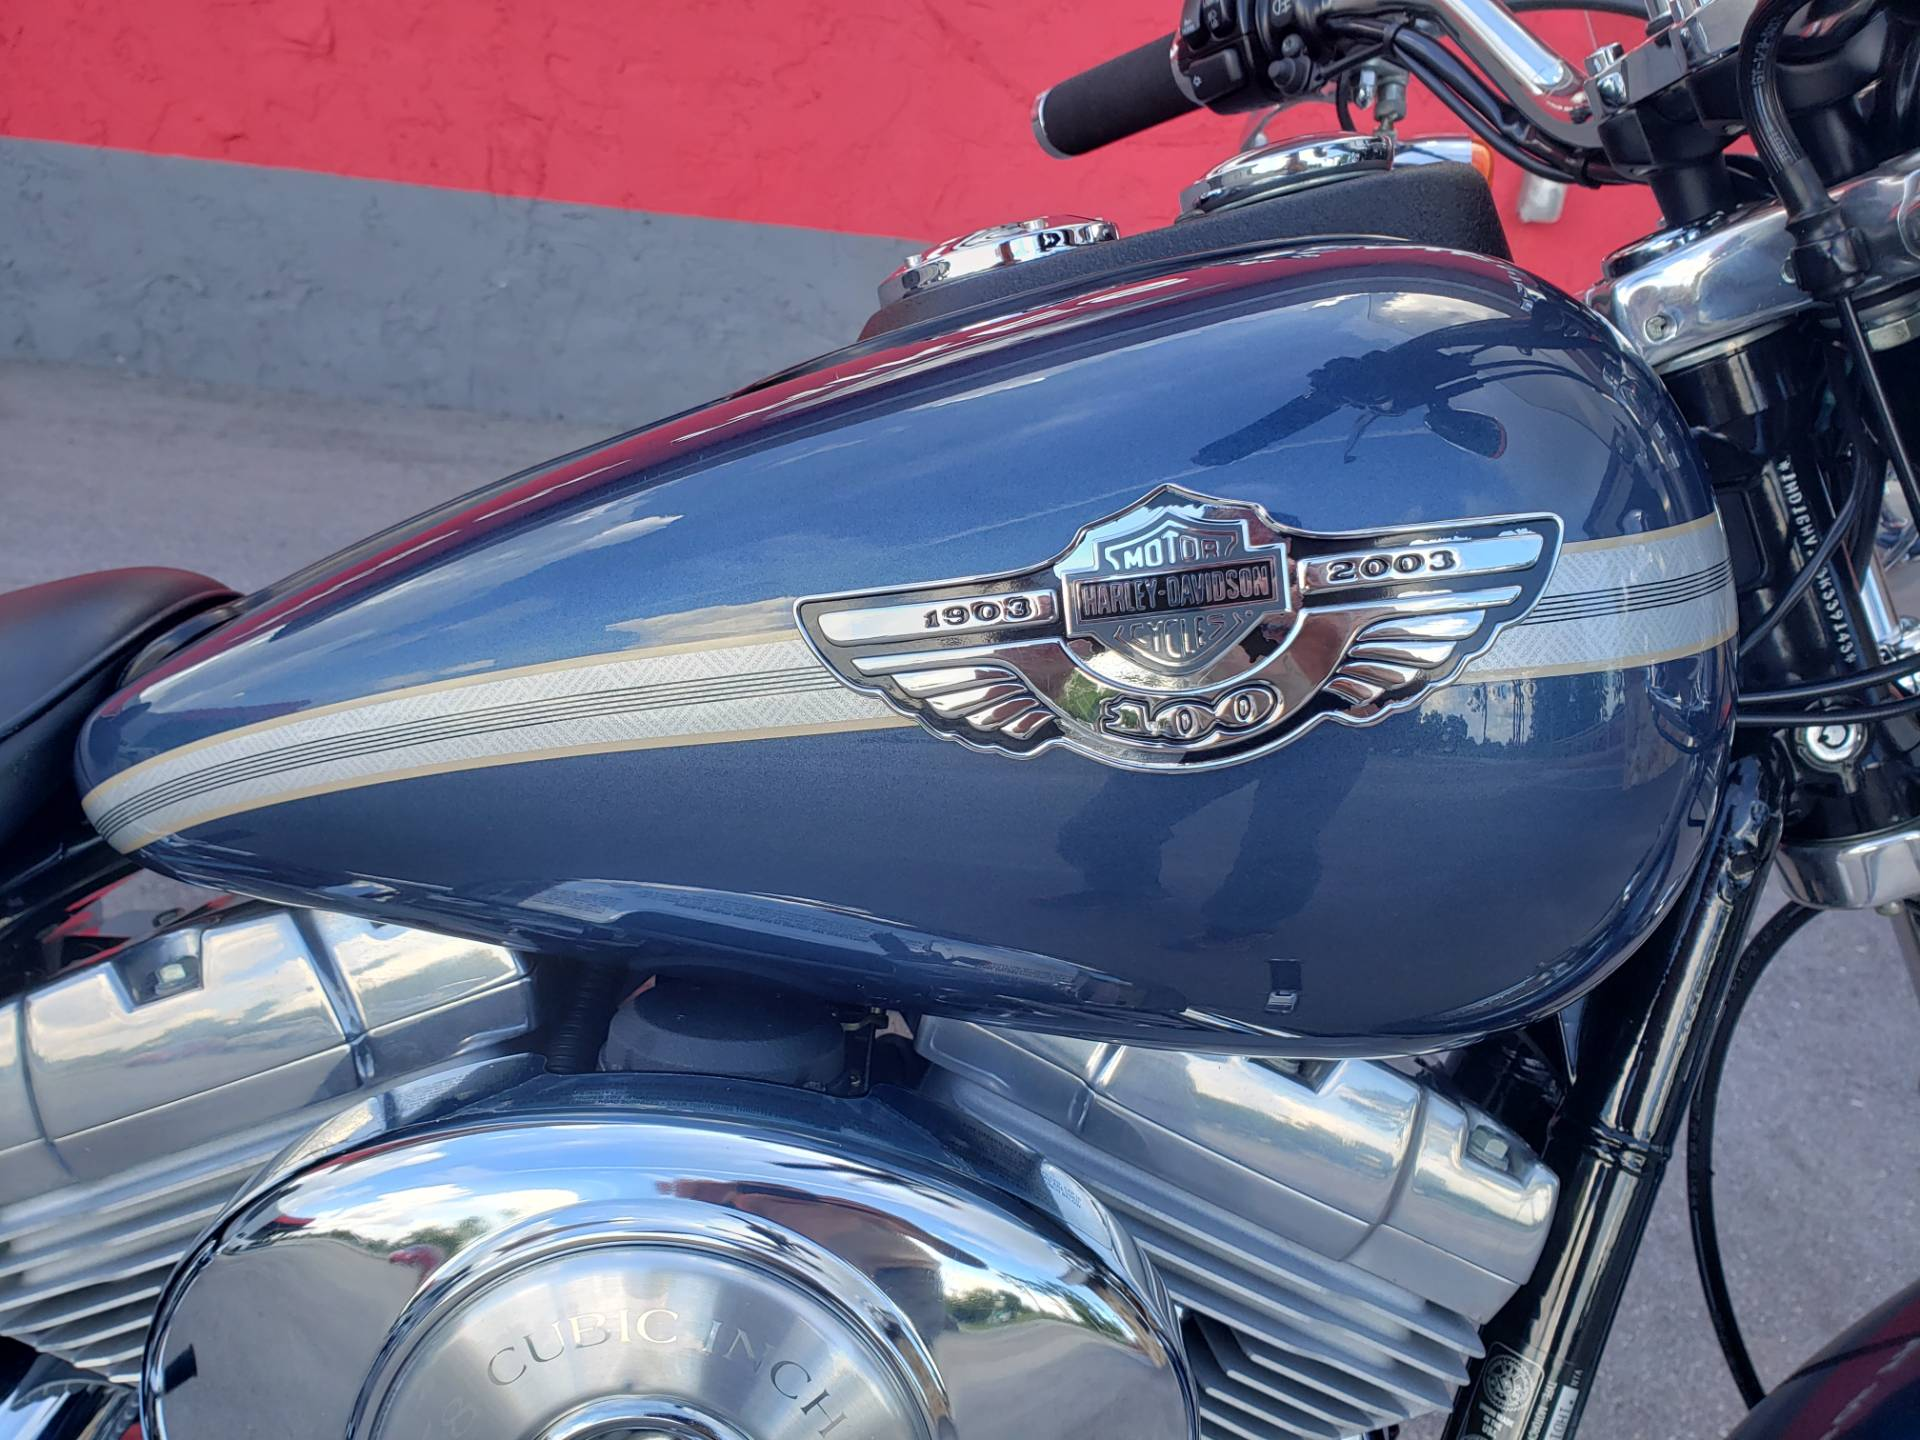 2003 Harley-Davidson FXDL Dyna Low Rider® in Fort Myers, Florida - Photo 9